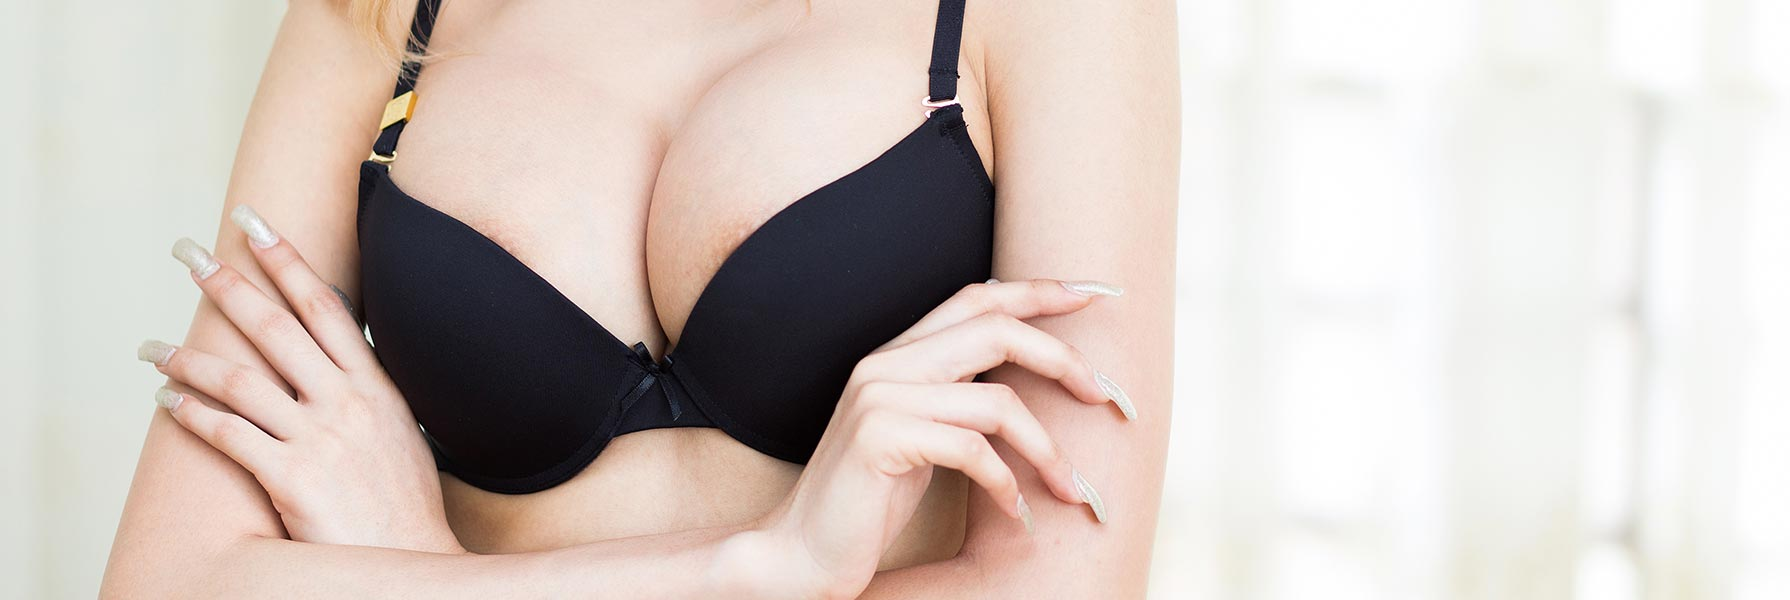 breast lift and implants - Form & Face Sydney